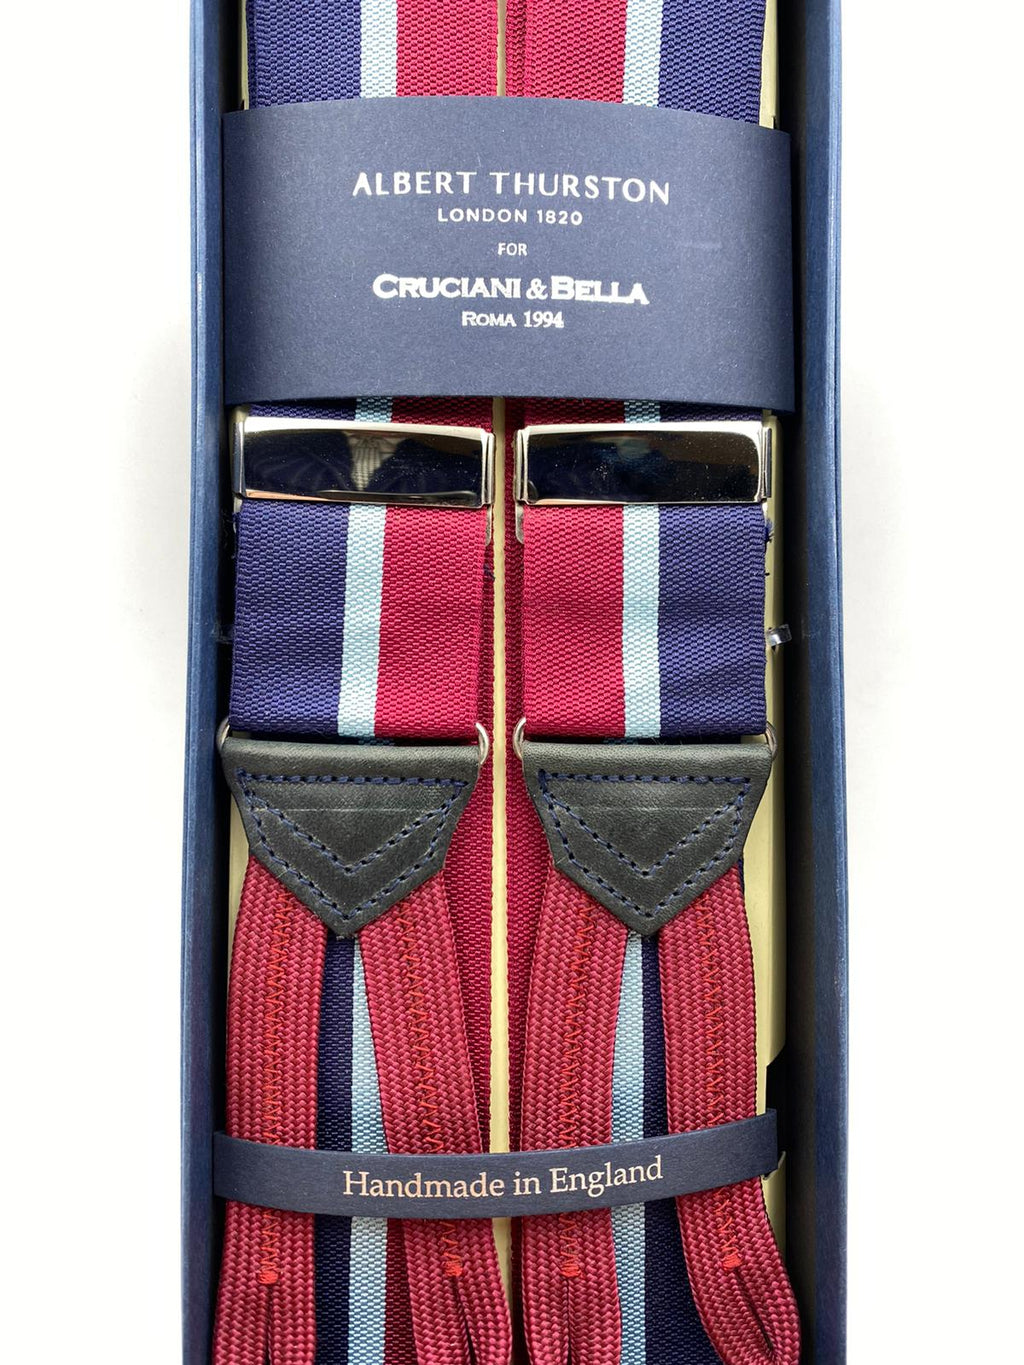 Albert Thurston for Cruciani & Bella Made in England Adjustable Sizing 40 mm Woven Barathea  Blue, Sky Blue and Red Stripes Braces Braid ends Y-Shaped Nickel Fittings Size: L #2366